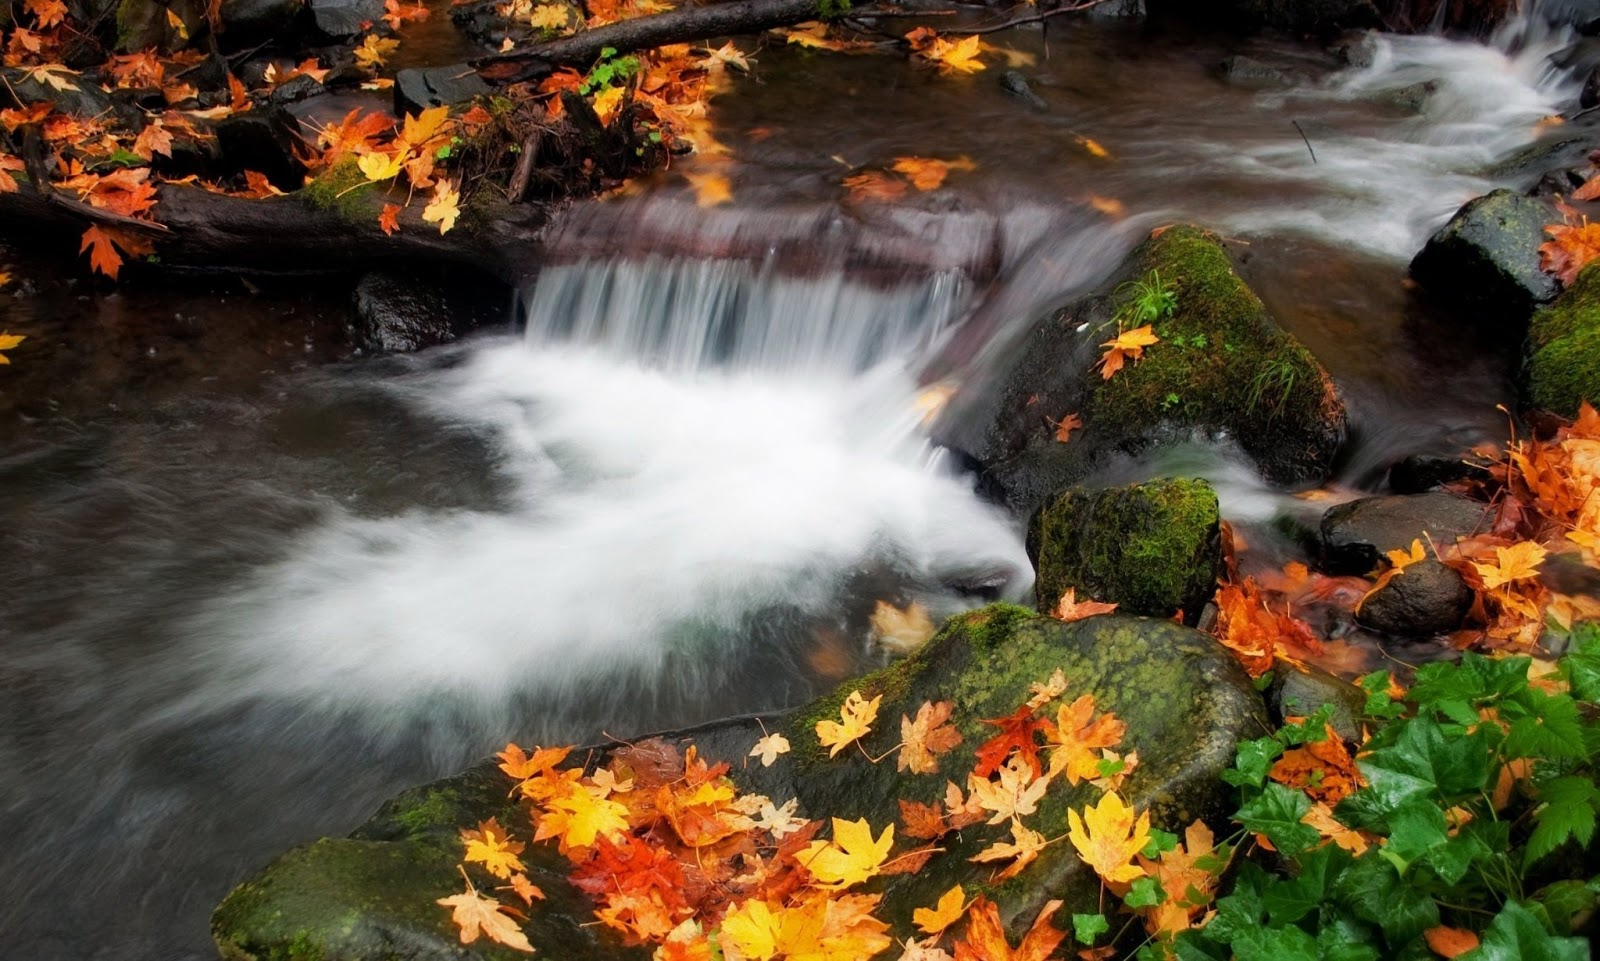 Hd Wallpapers 1080p Nature: AMAZING NATURE HD WALLPAPERS 1080p